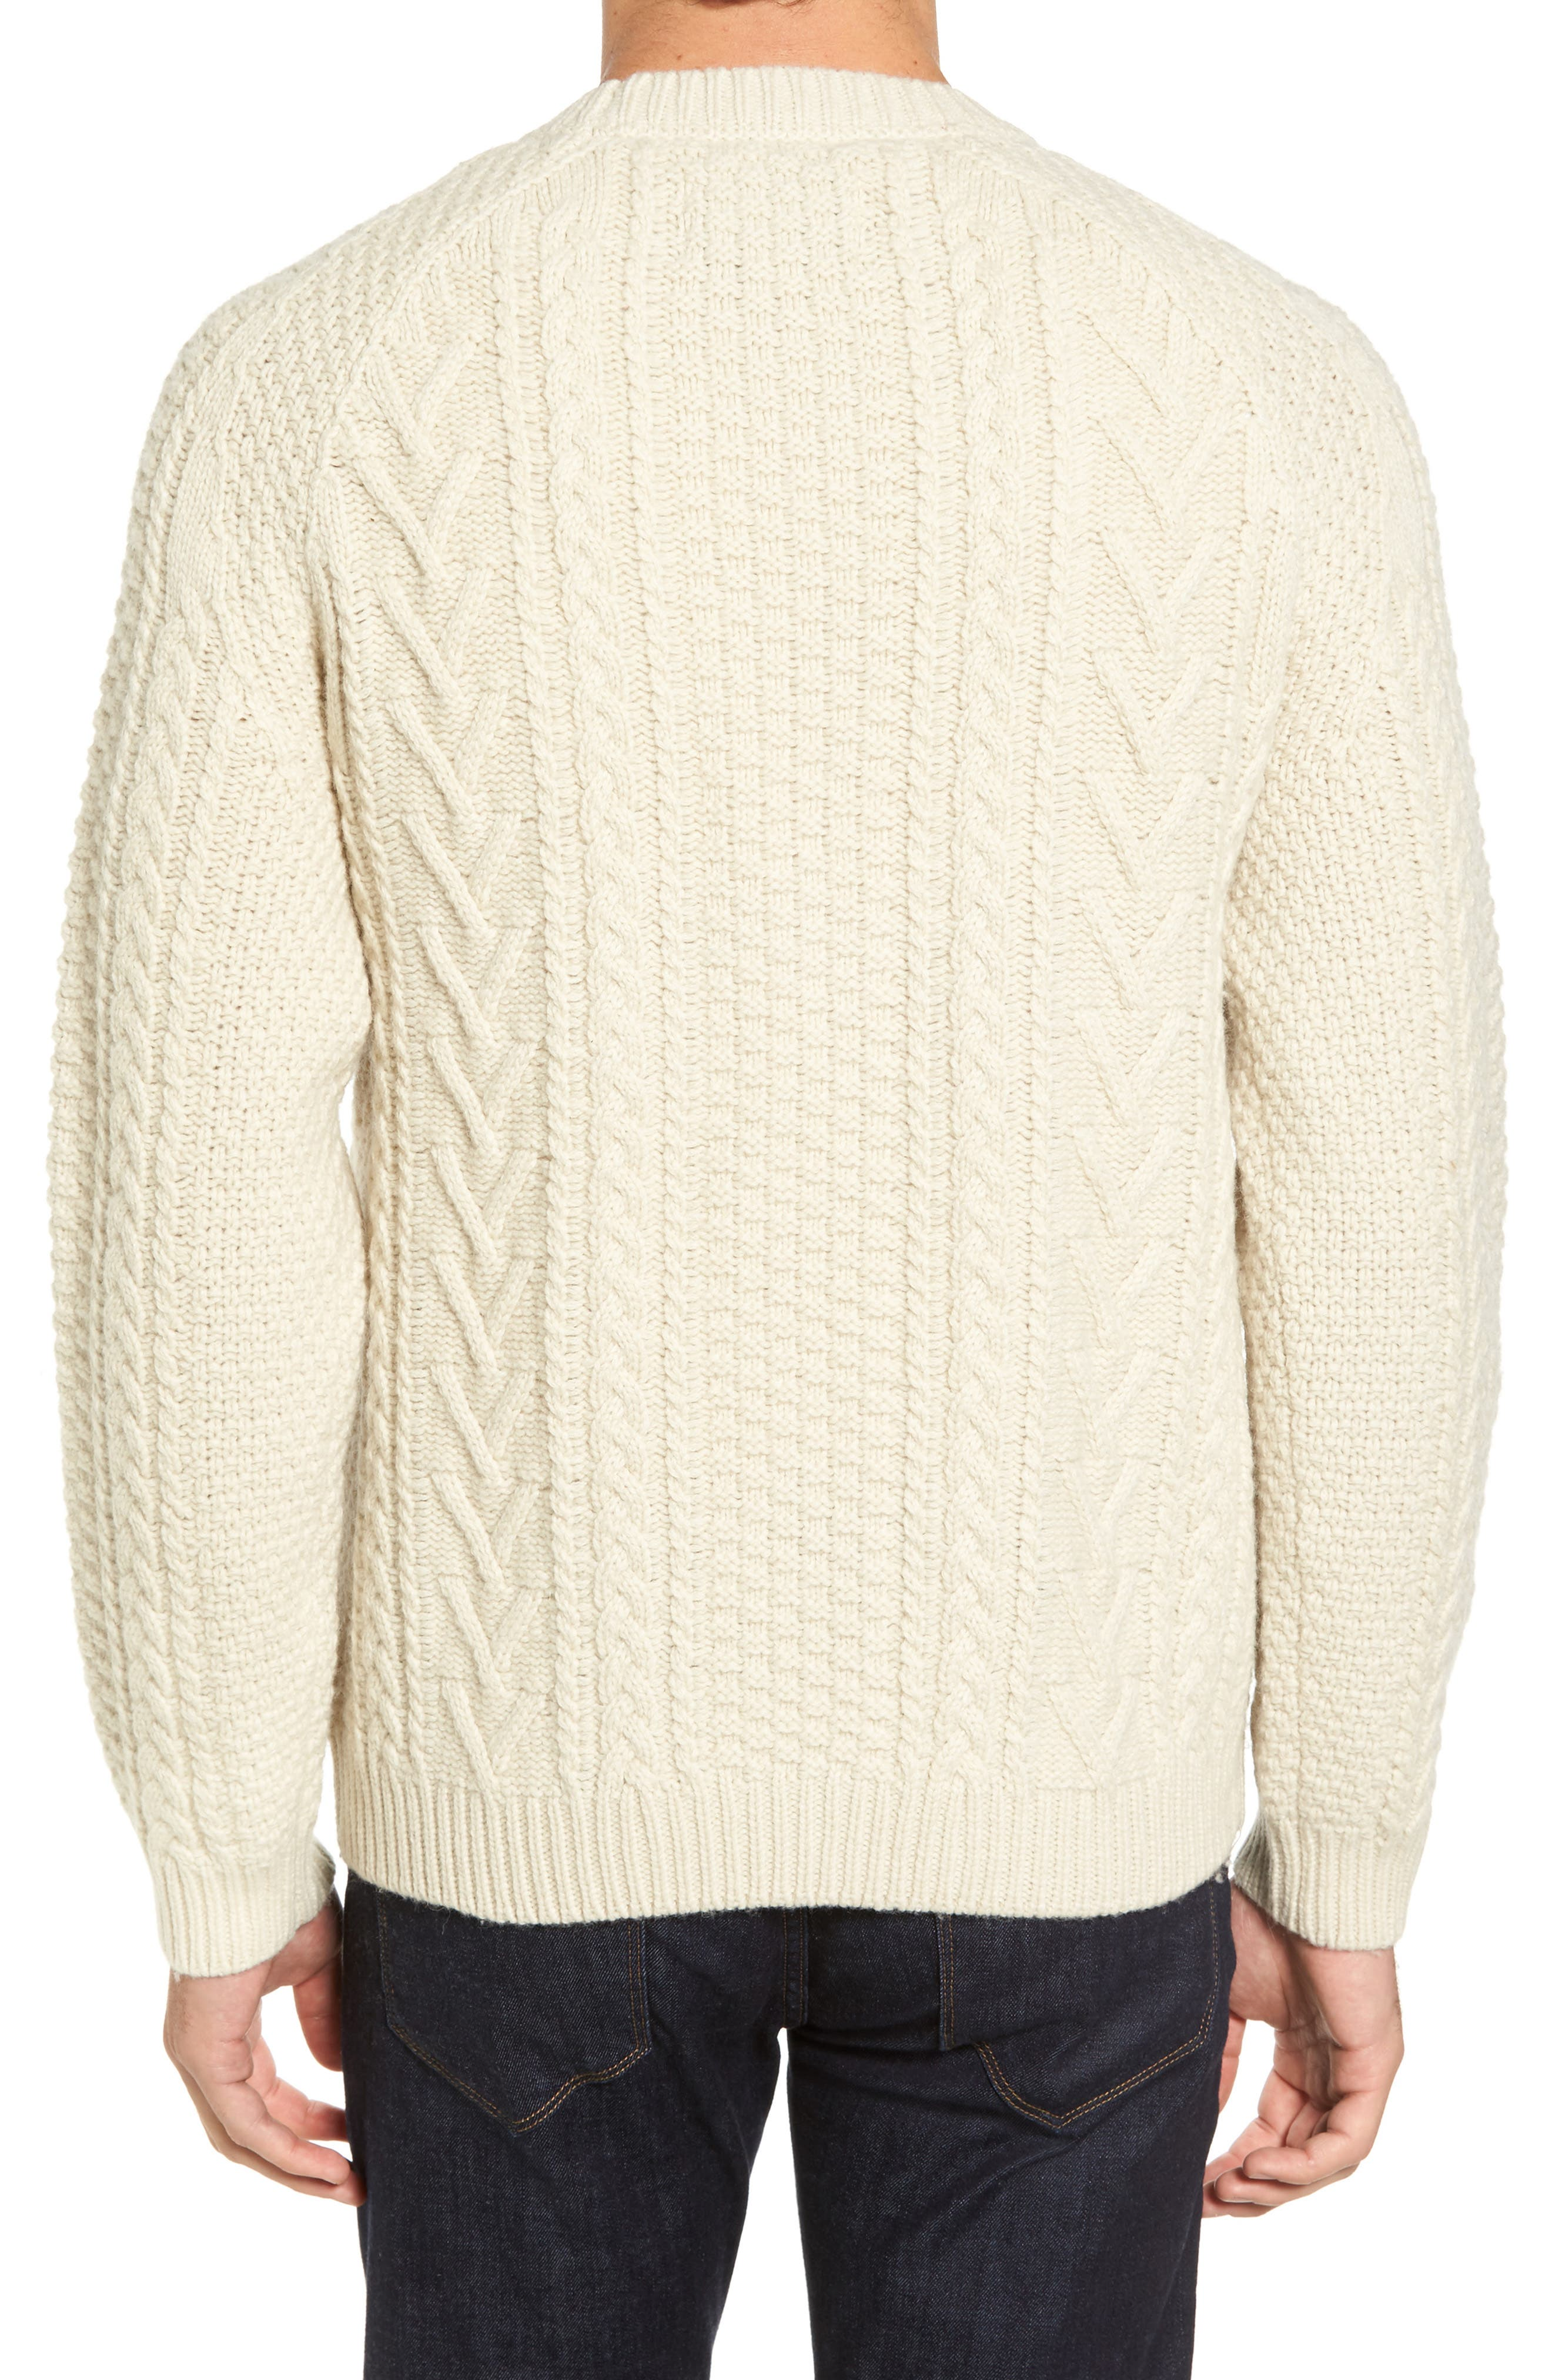 Fisherman Knit Wool Blend Sweater,                             Alternate thumbnail 2, color,                             OFF WHITE